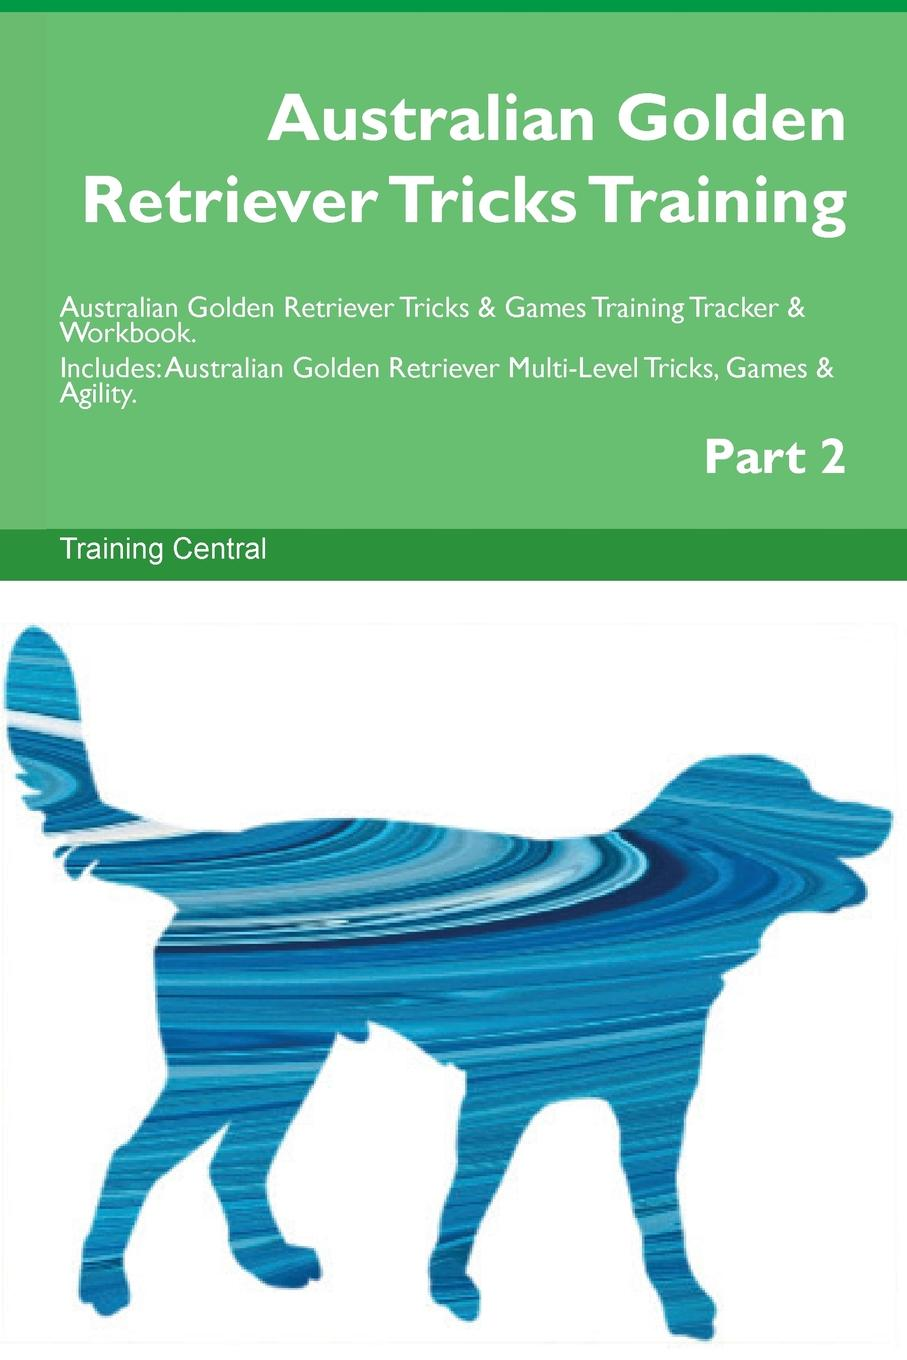 Training Central Australian Golden Retriever Tricks Training Australian Golden Retriever Tricks . Games Training Tracker . Workbook. Includes. Australian Golden Retriever Multi-Level Tricks, Games . Agility. Part 2 цены онлайн